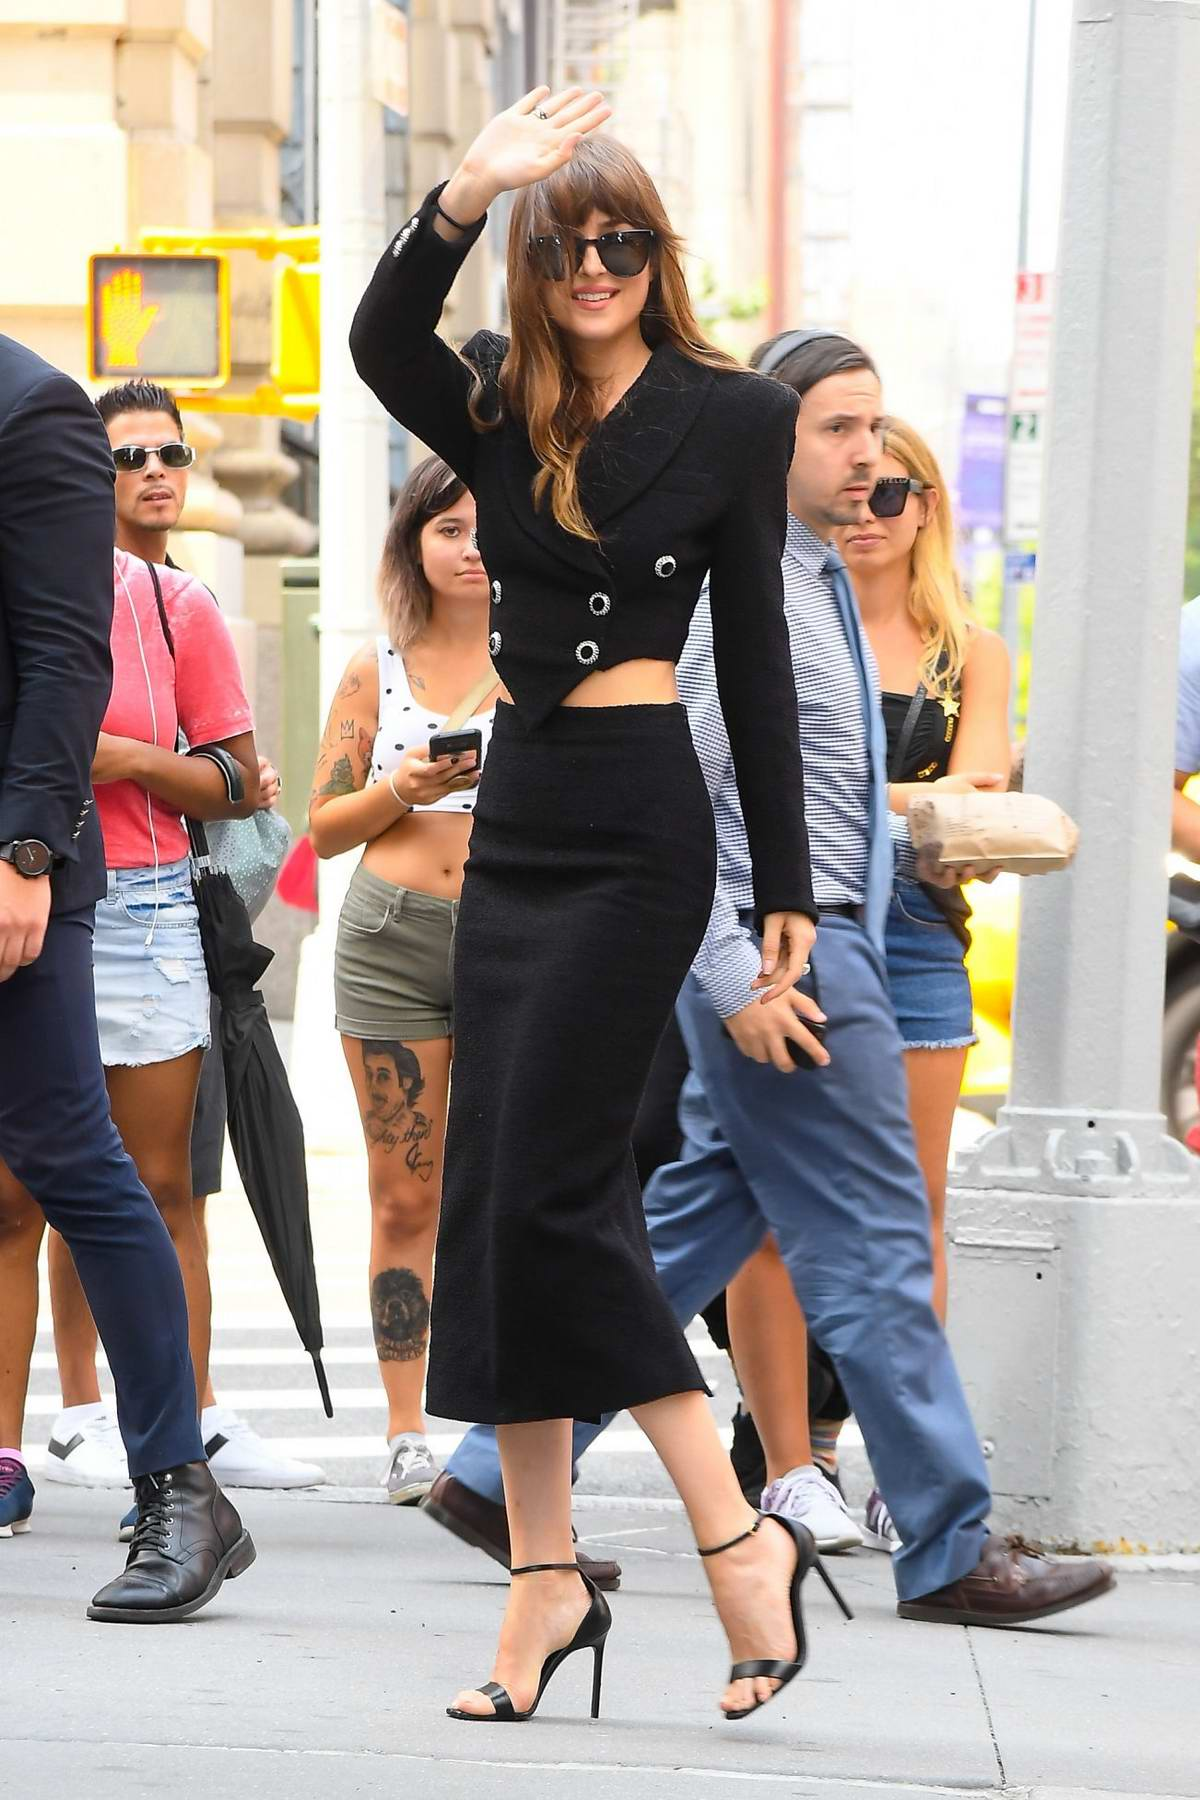 Dakota Johnson looks stylish in a black outfit while promoting 'The Peanut Butter Falcon' at a radio station in New York City